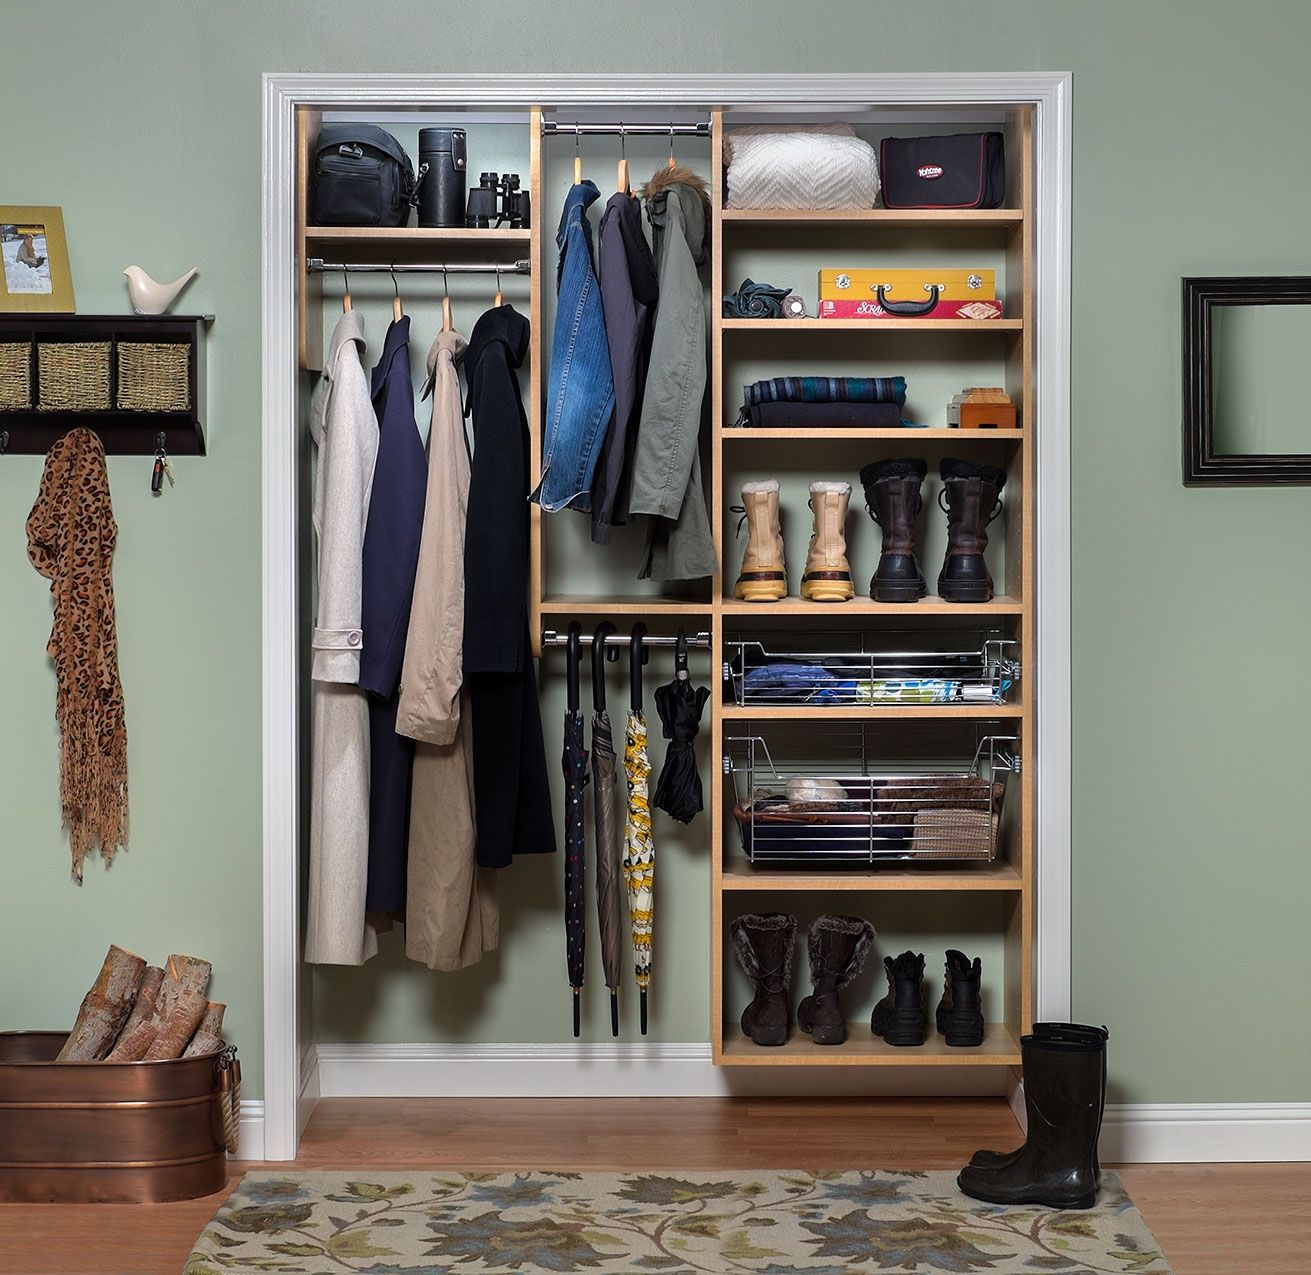 Save Time, Space And Money With Closet Organizers And Storage Systems From  A Leading Supplier Of Custom Closet Components. View The Photo Gallery!